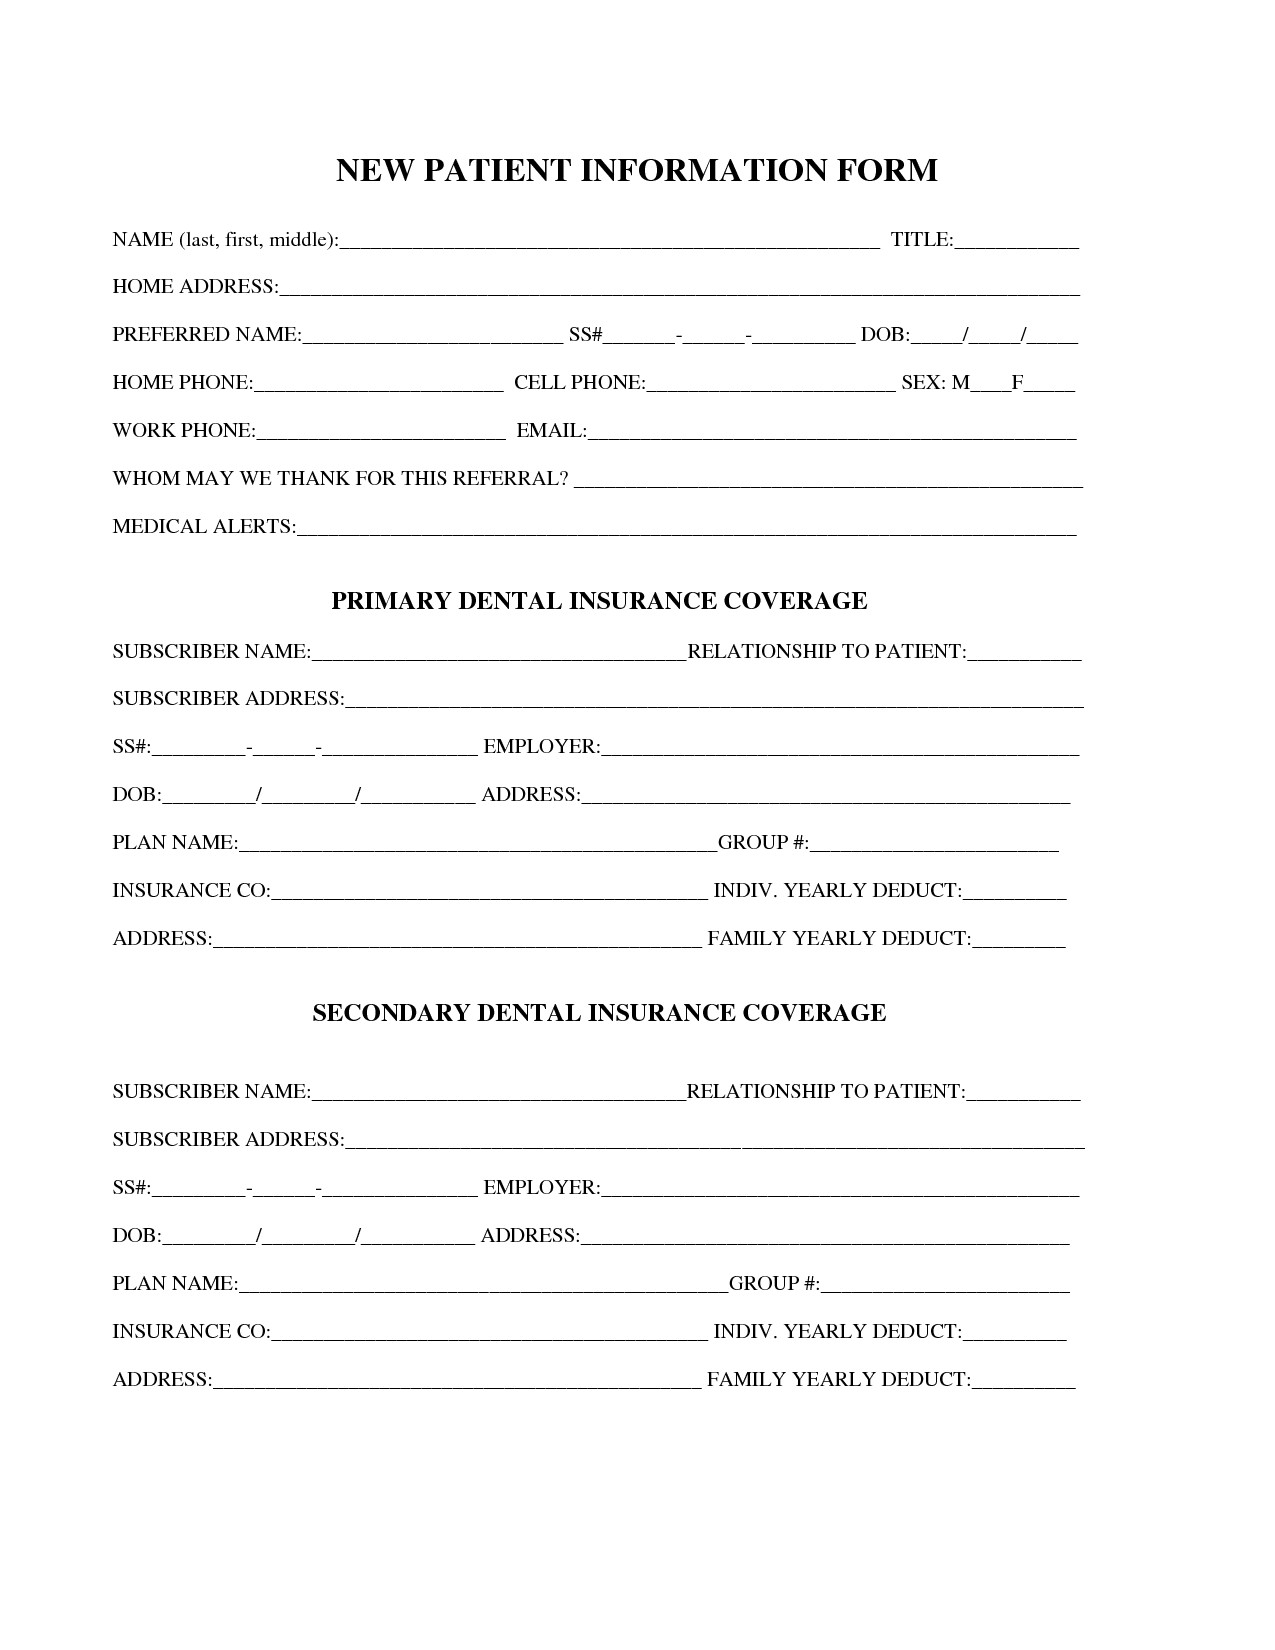 Patient Information form Template 27 Of Dental New Patient forms Template